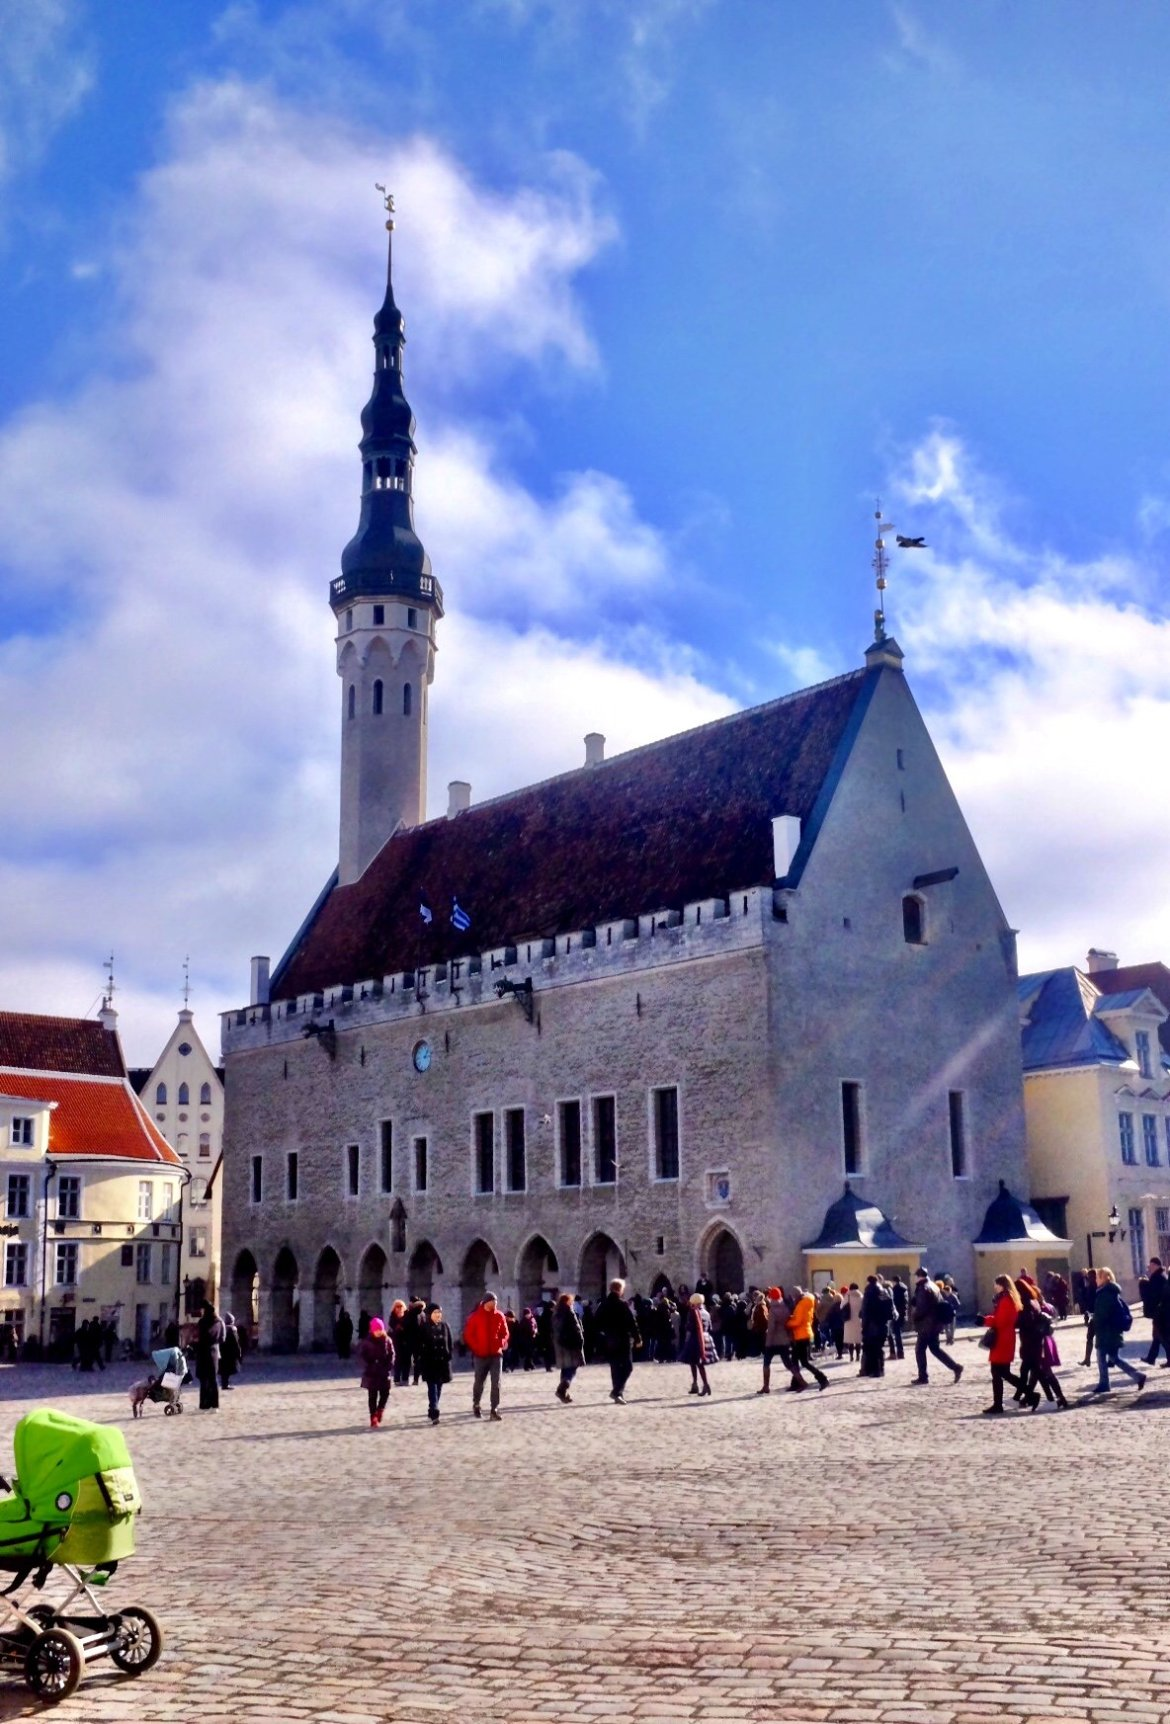 Weekend in Tallinn Tallinn Town Hall by day